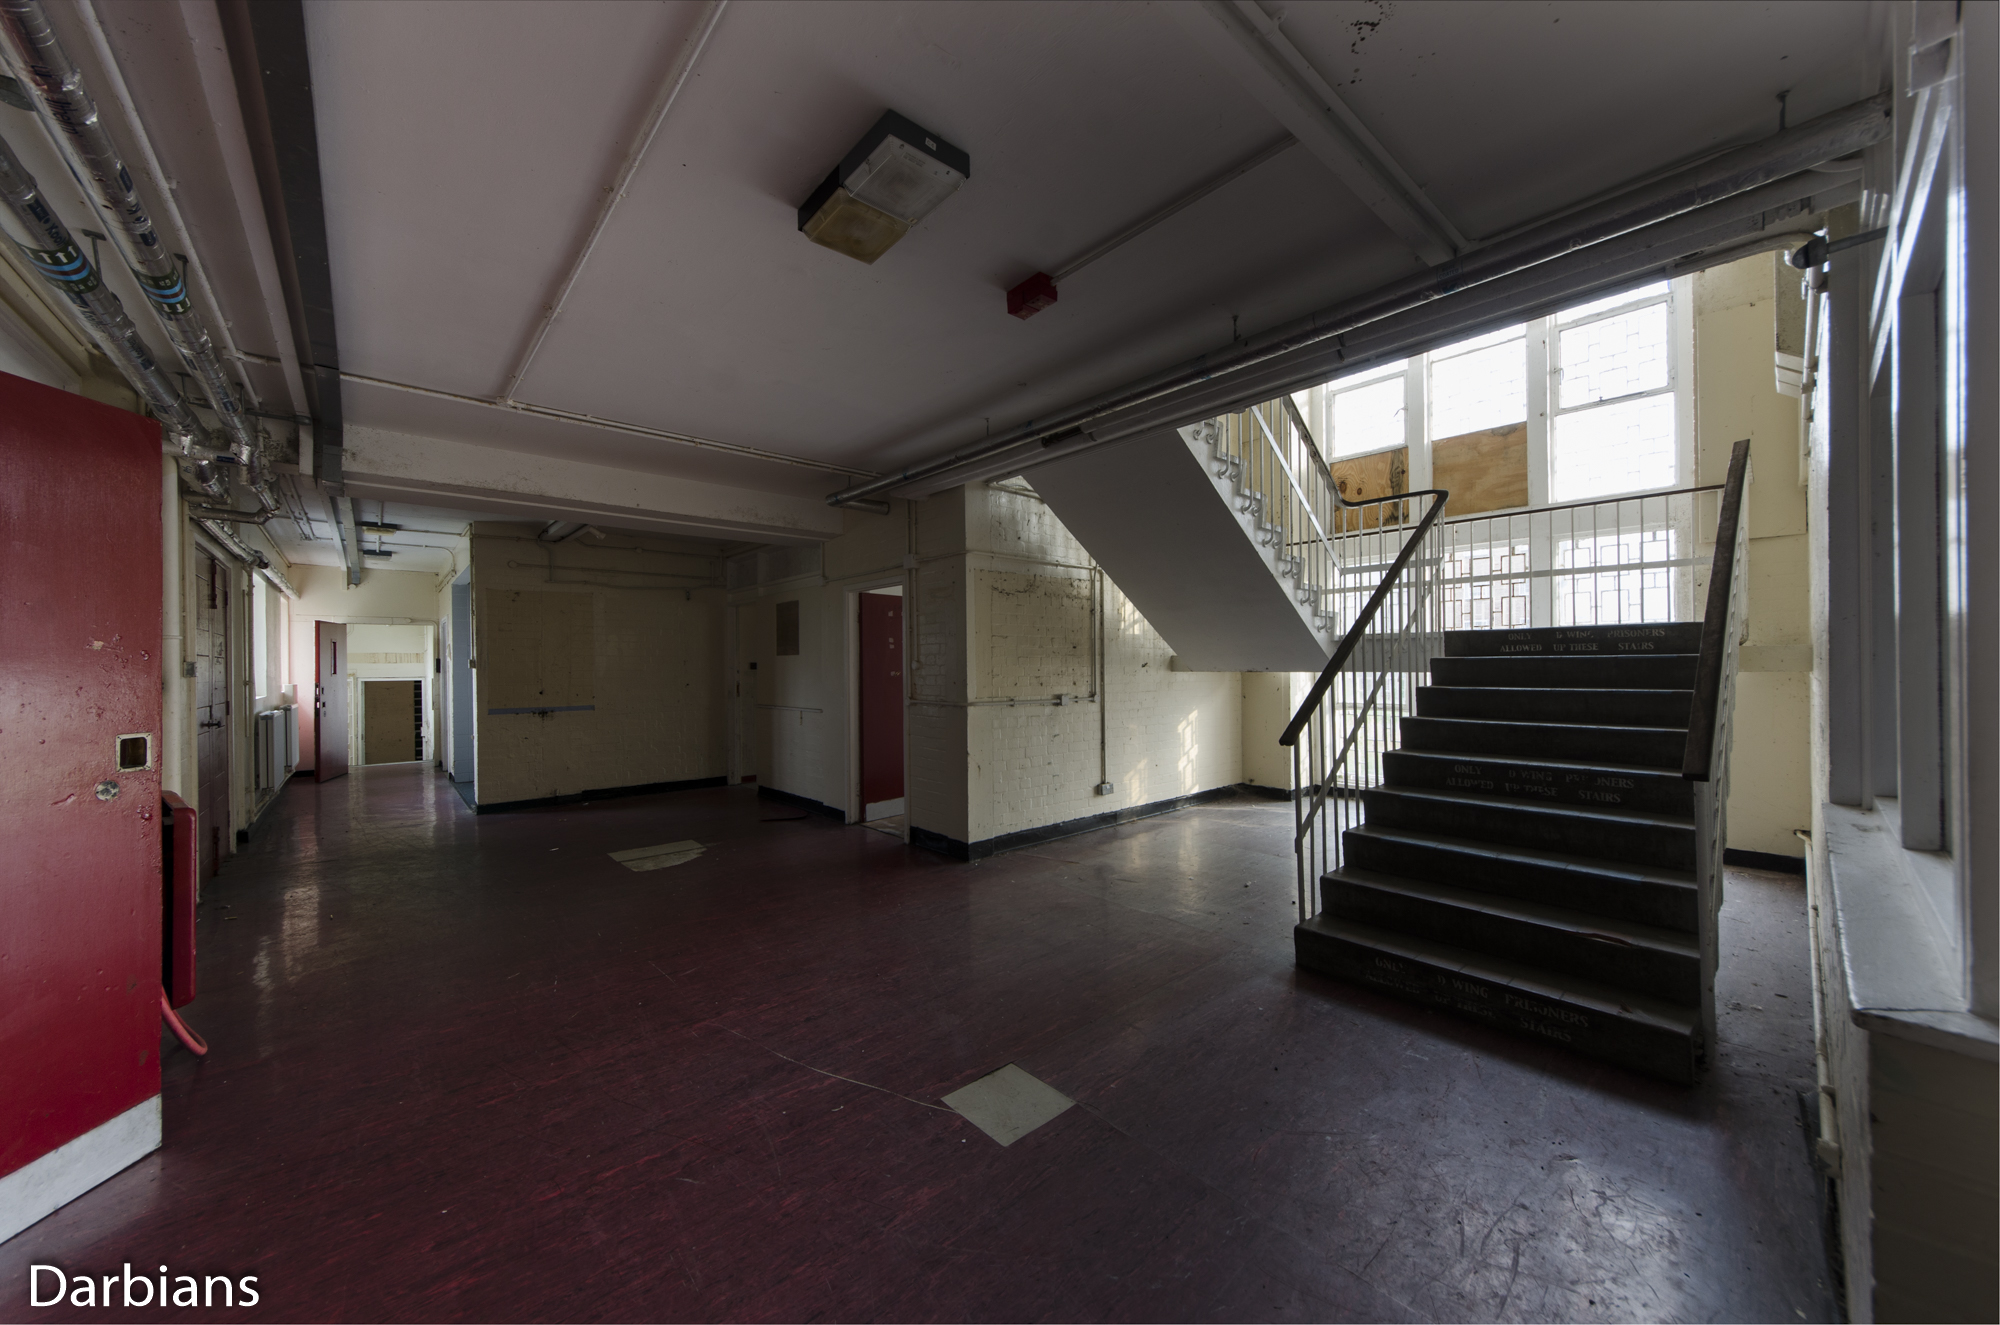 HMP Blundeston Prison. Another staircase.